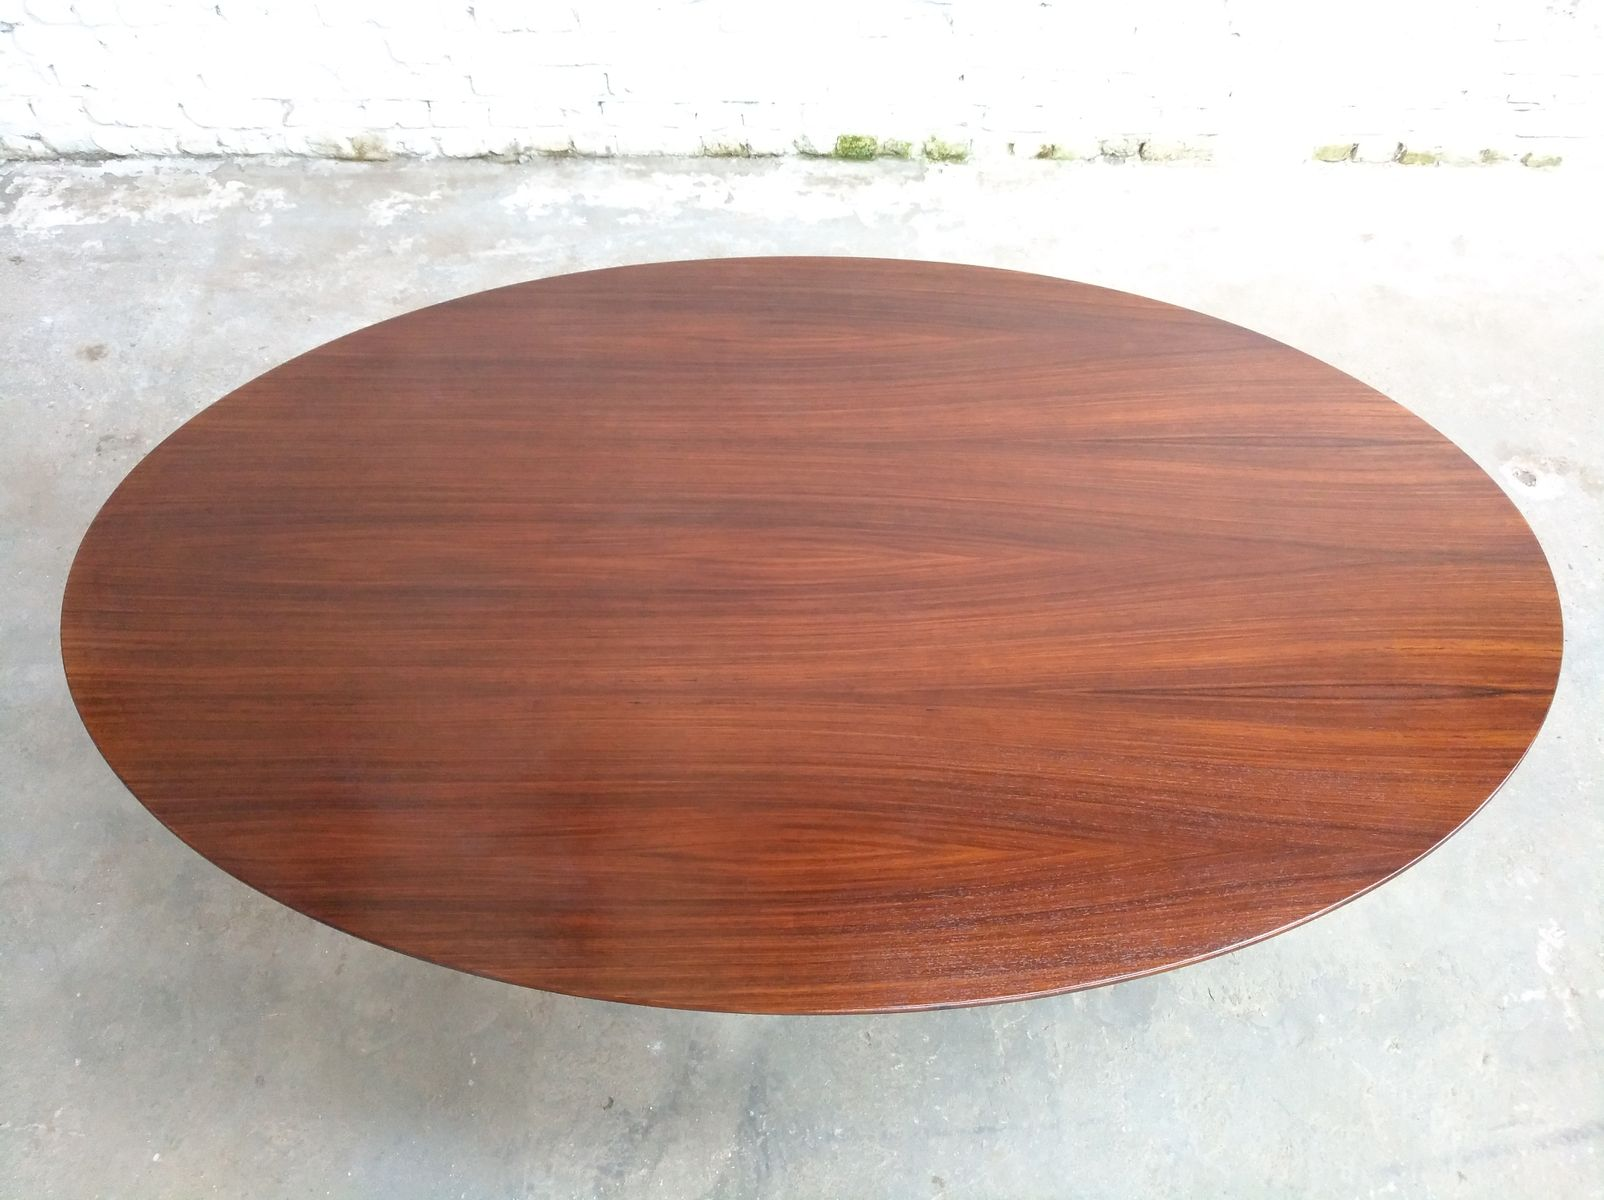 Oval Rosewood Dining Table By Eero Saarinen For Knoll International 1960s Sale At Pamono